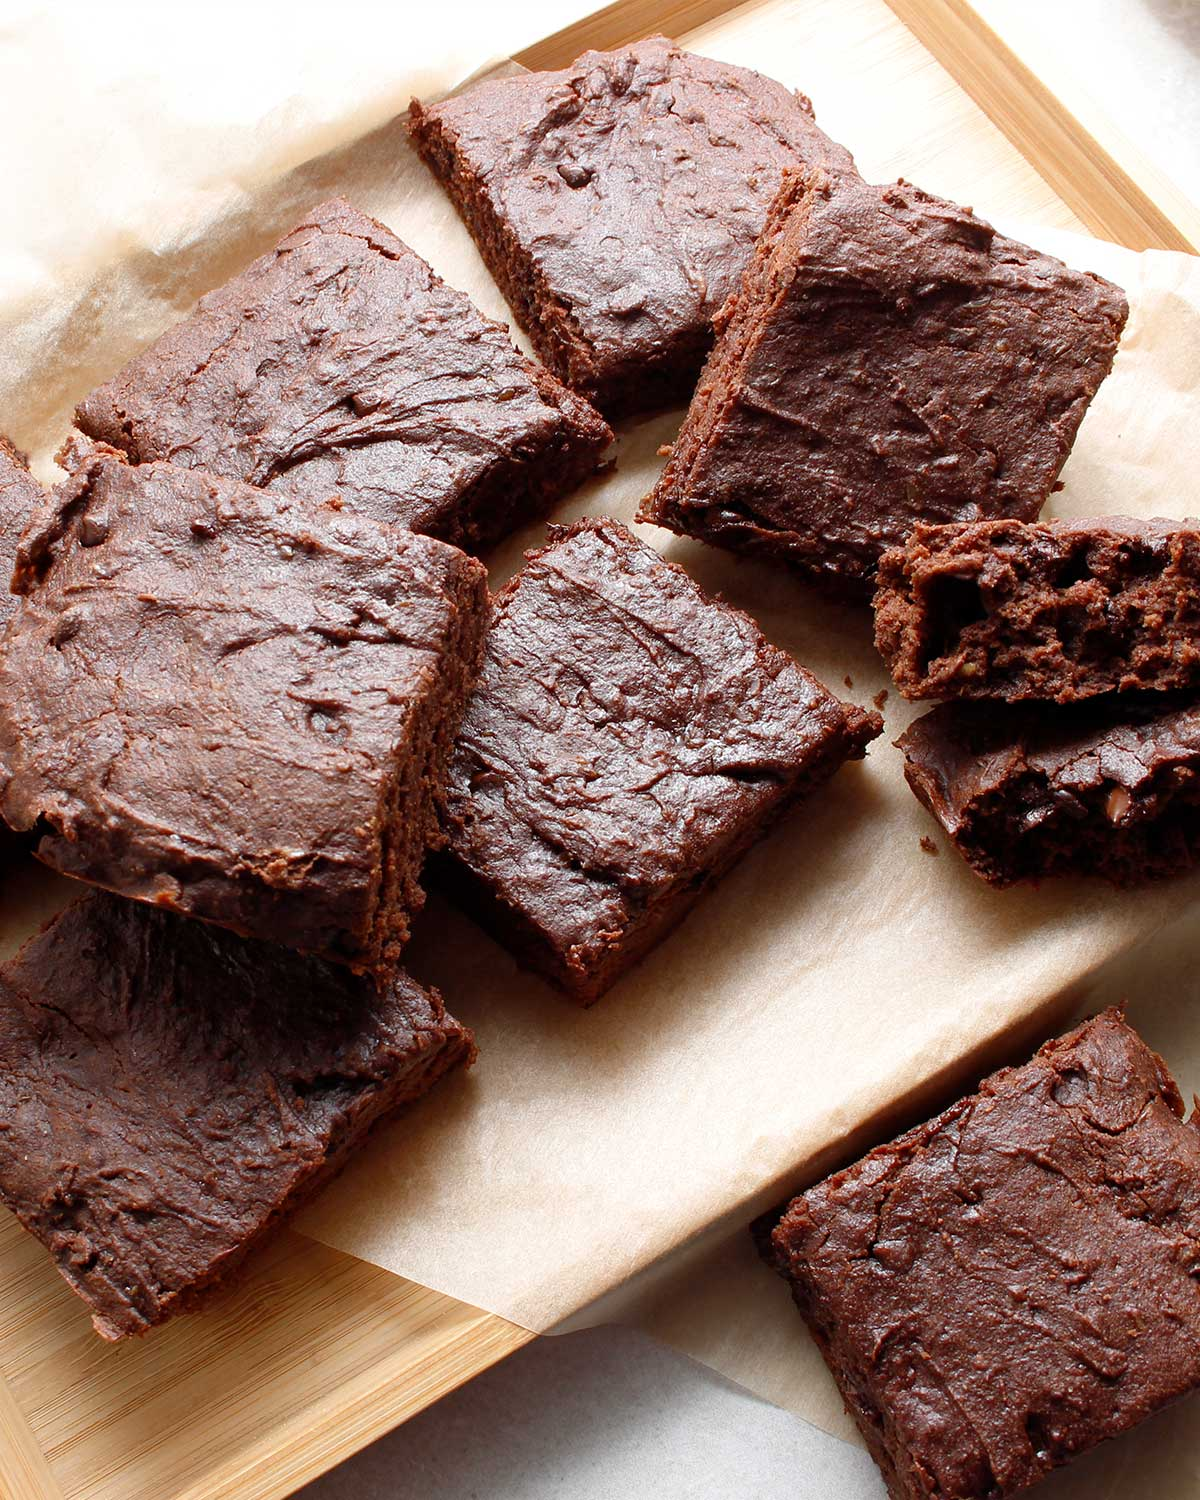 Gluten-free sourdough brownies recipe by Fresh is Real.